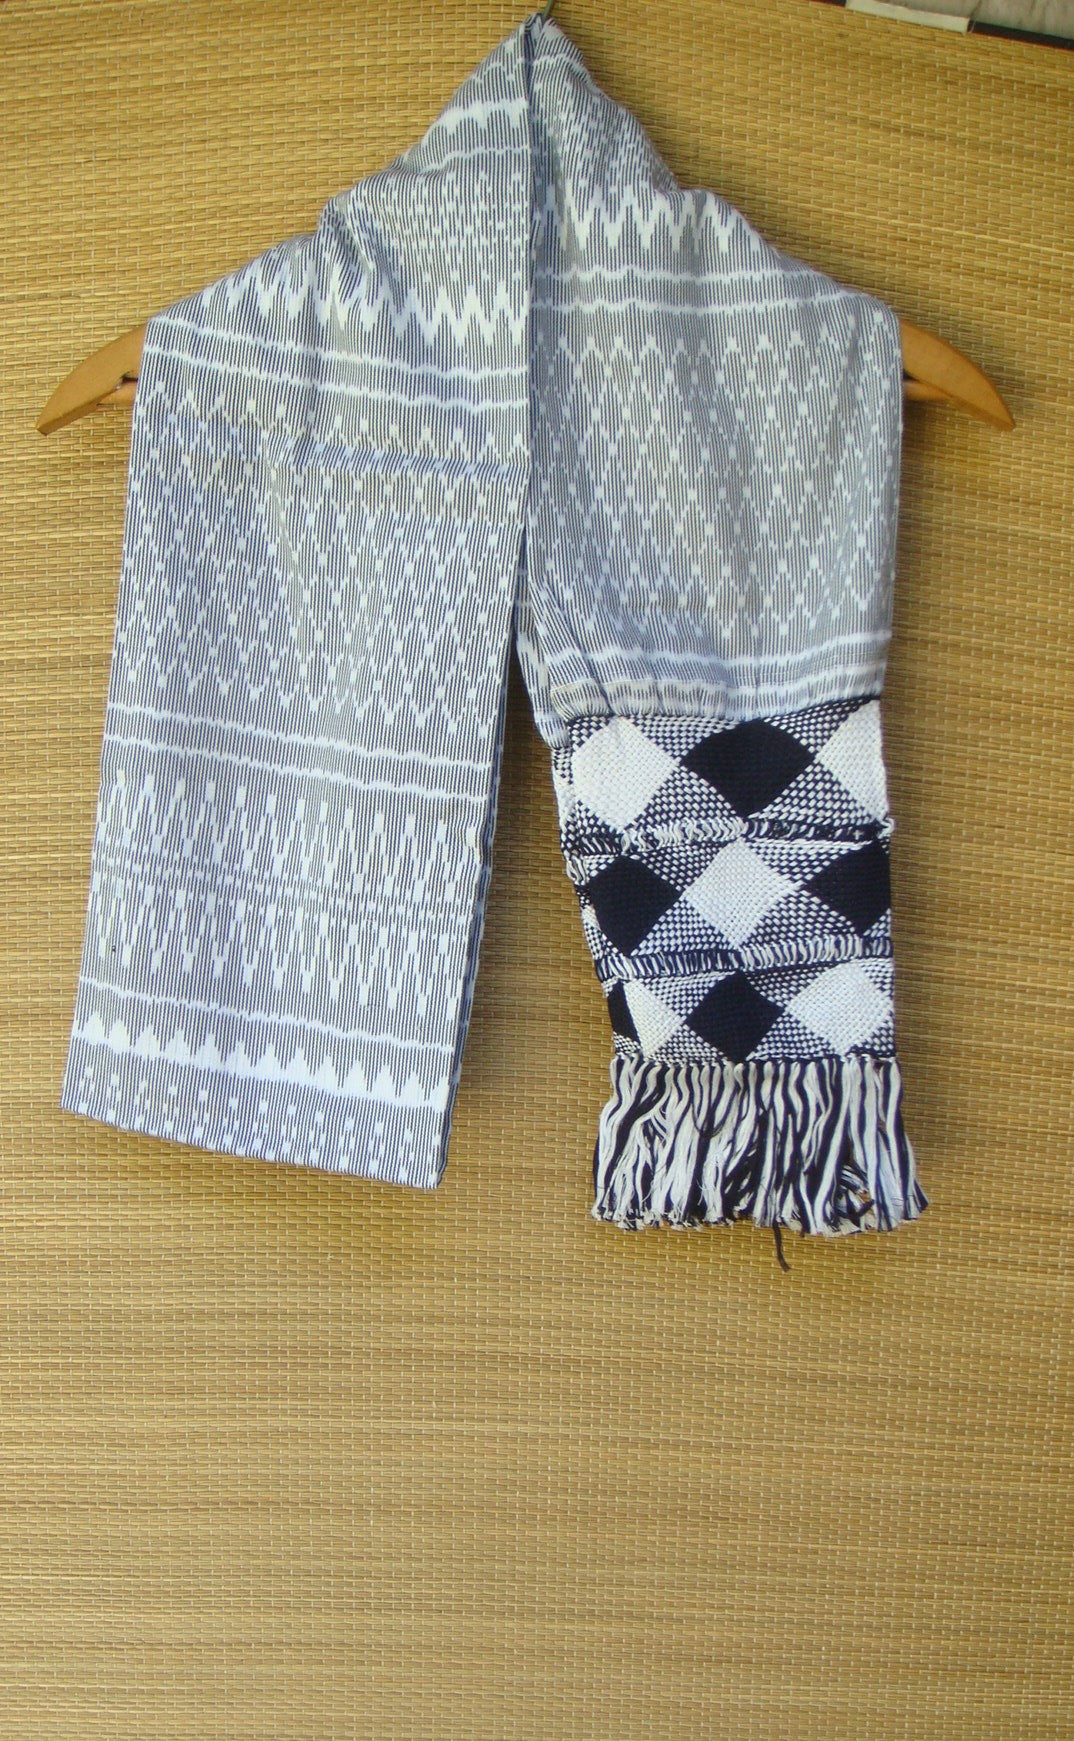 Mexican Handwoven Cream with Black Rebozo Shawl Wrap Scarf Runner From Tenancingo